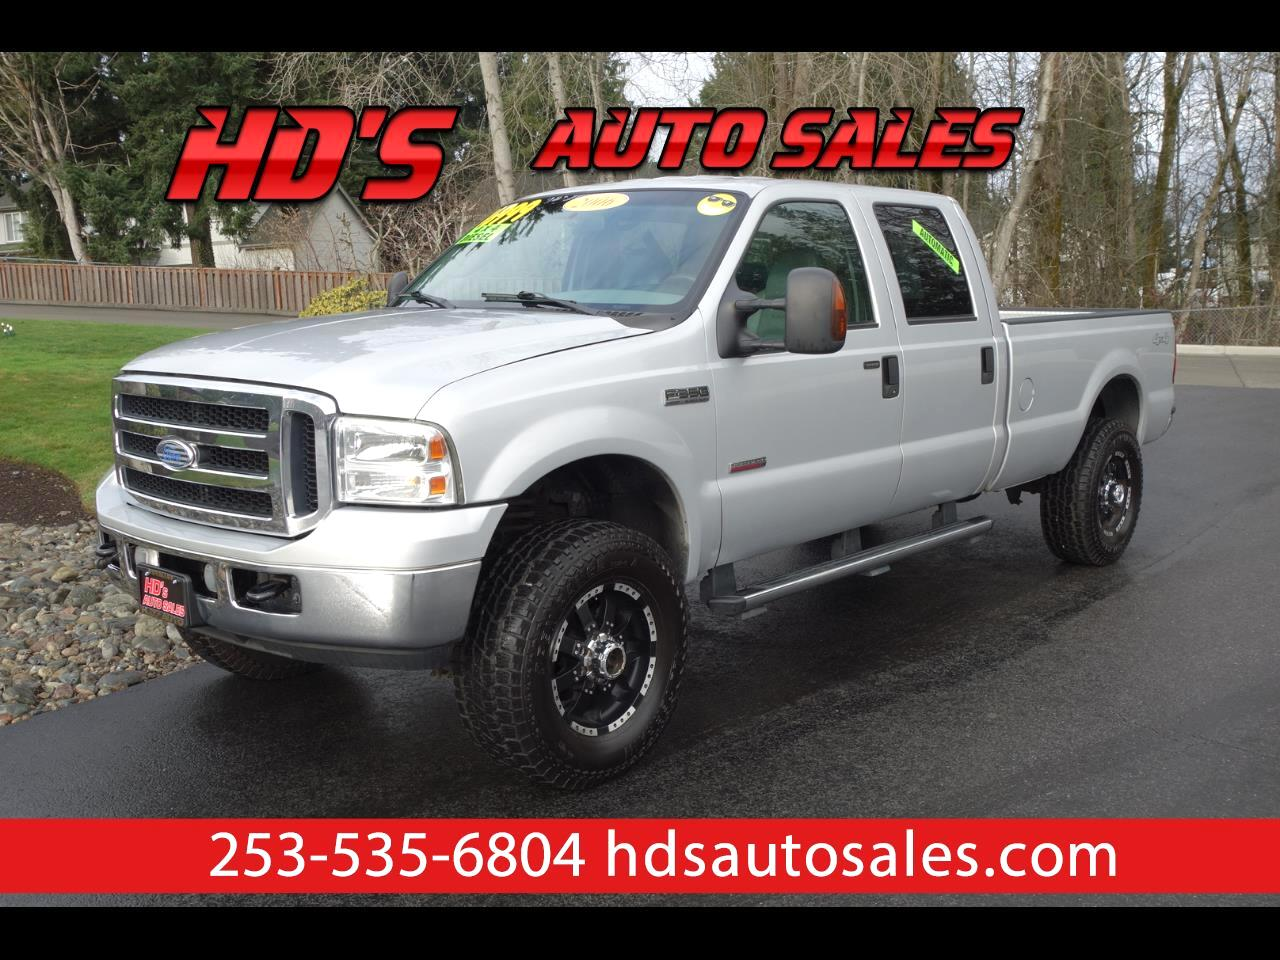 Ford F-350 SD Lariat Crew Cab Long Bed 4WD 2006